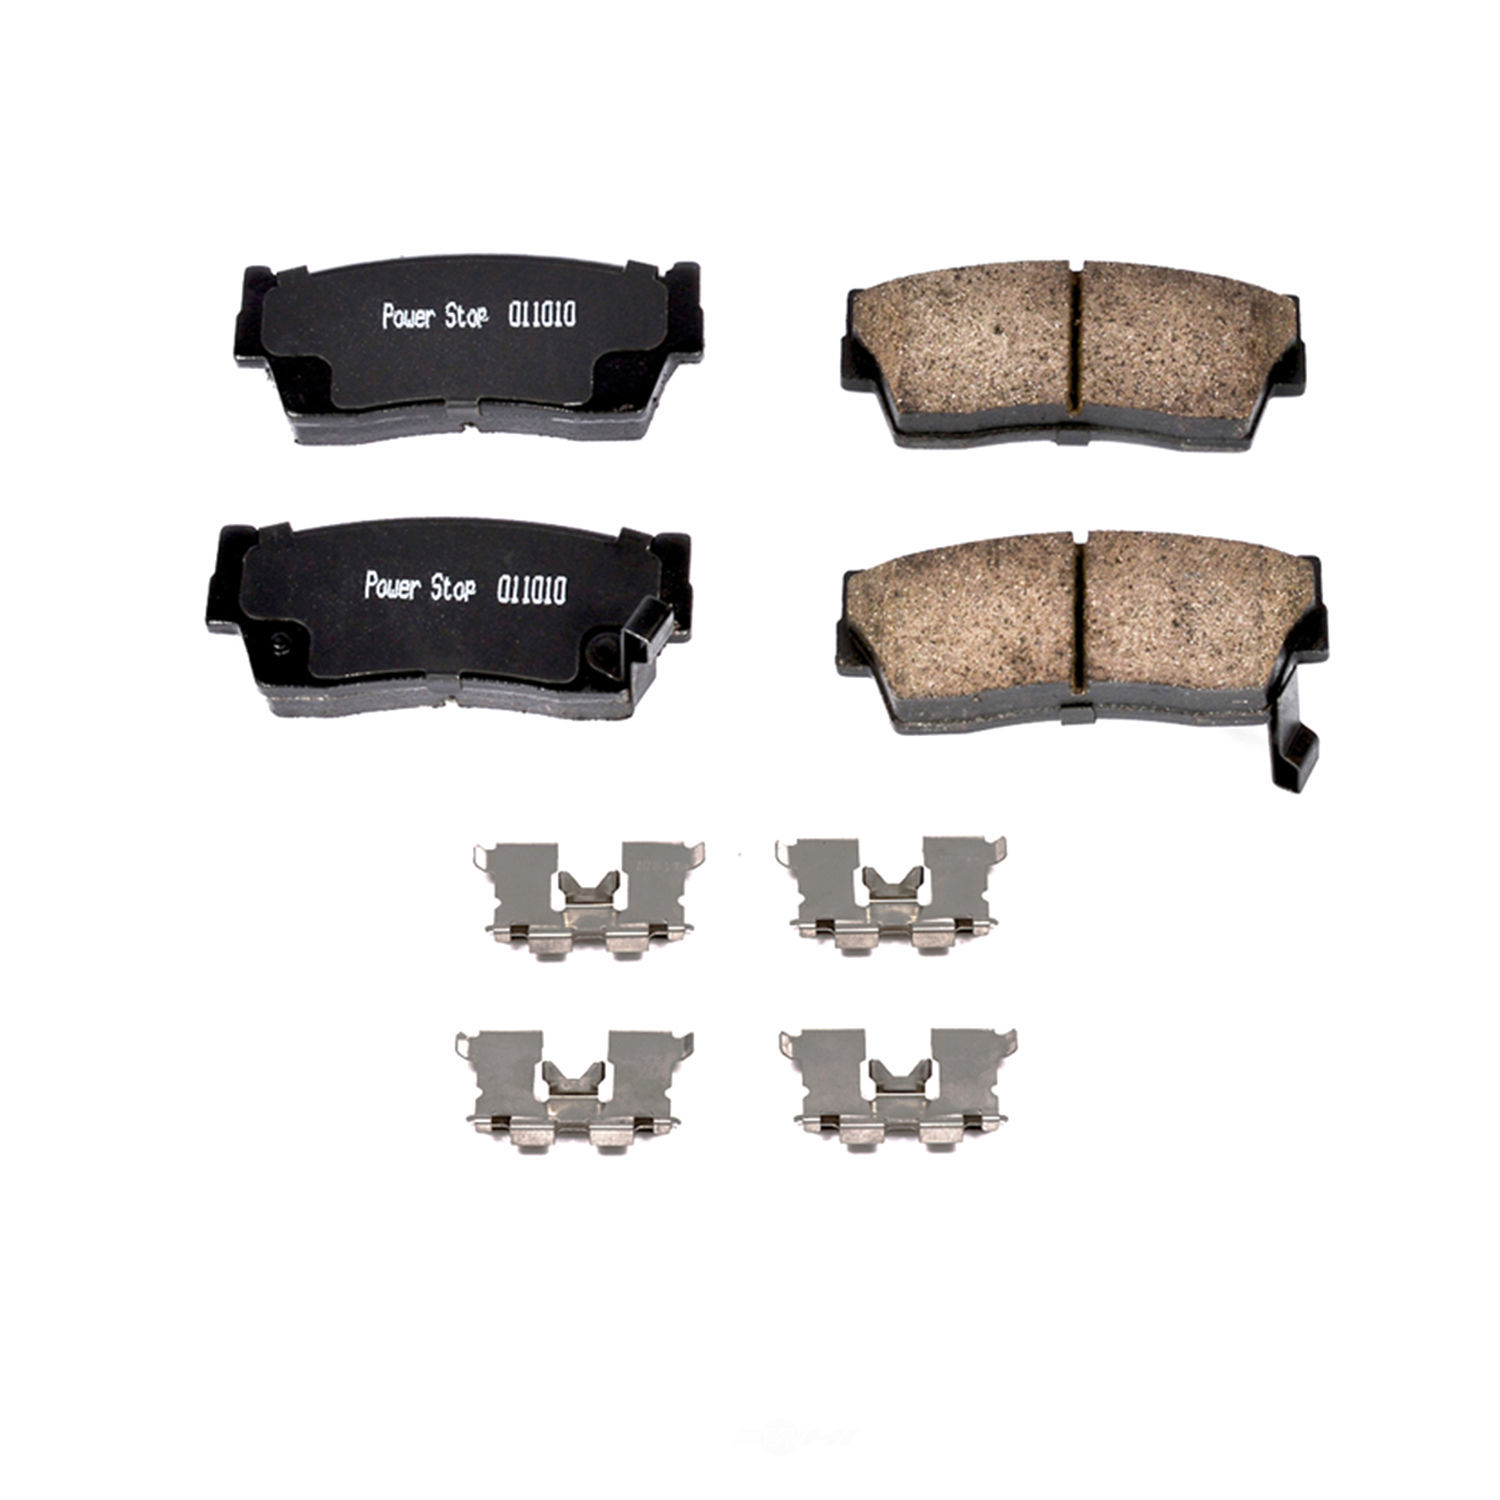 POWER STOP - Z17 Evolution Clean Ride Ceramic Brake Pads with Hardware - PWS 17-418